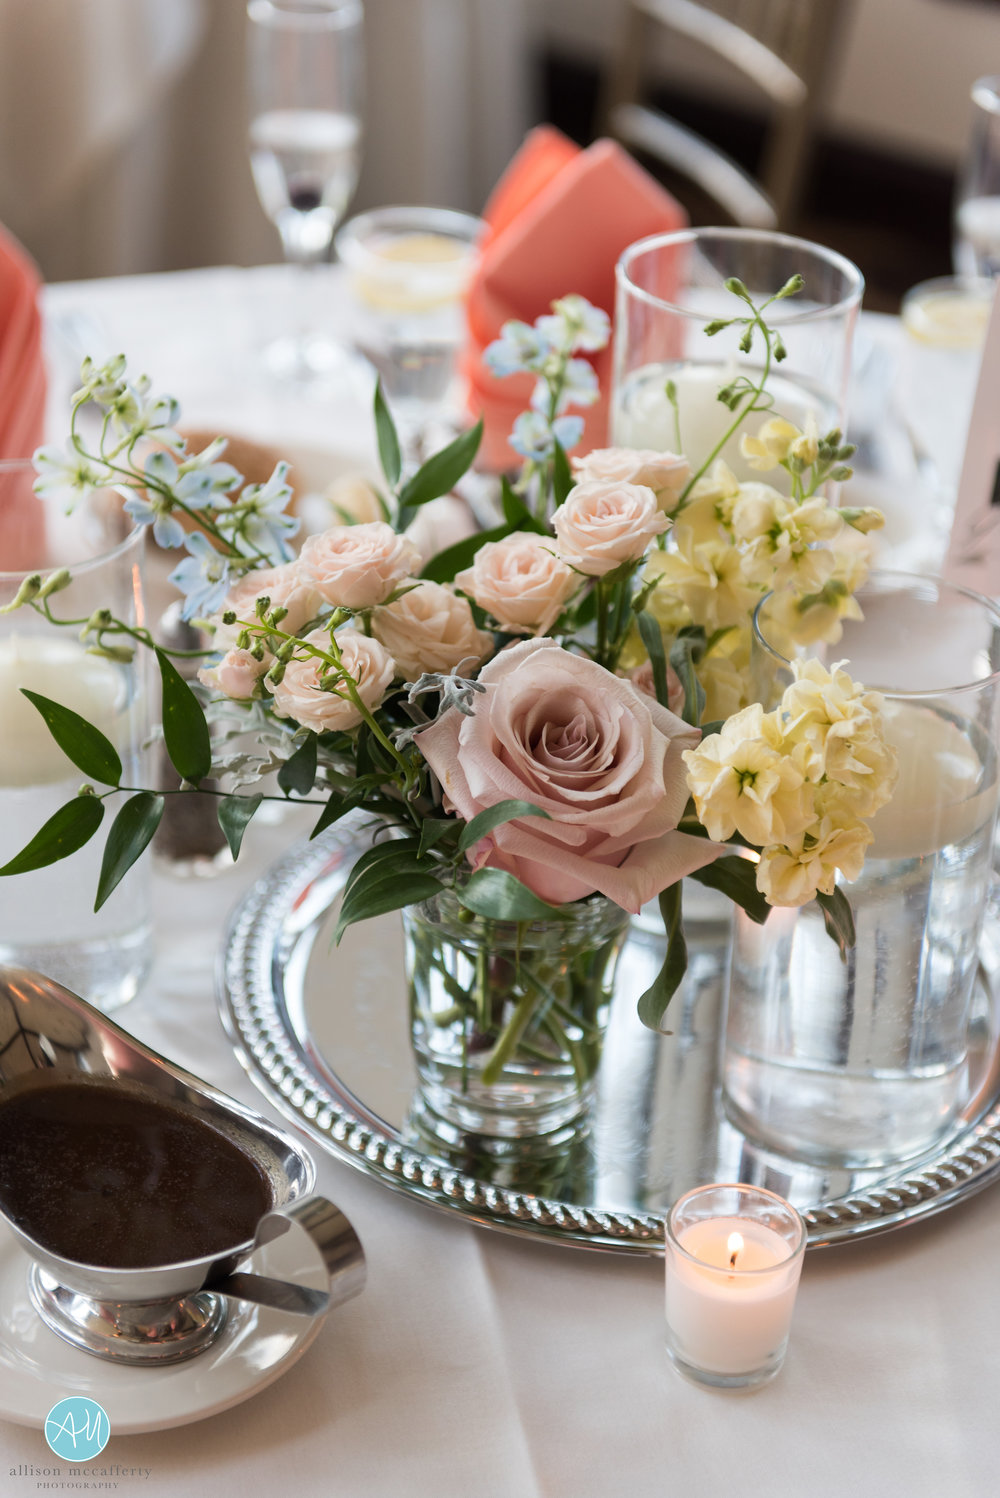 NJ Wedding, Private Wedding, Backyard Wedding, Tent Reception, Centerpiece, Muted Flowers, Karmapants Photography6